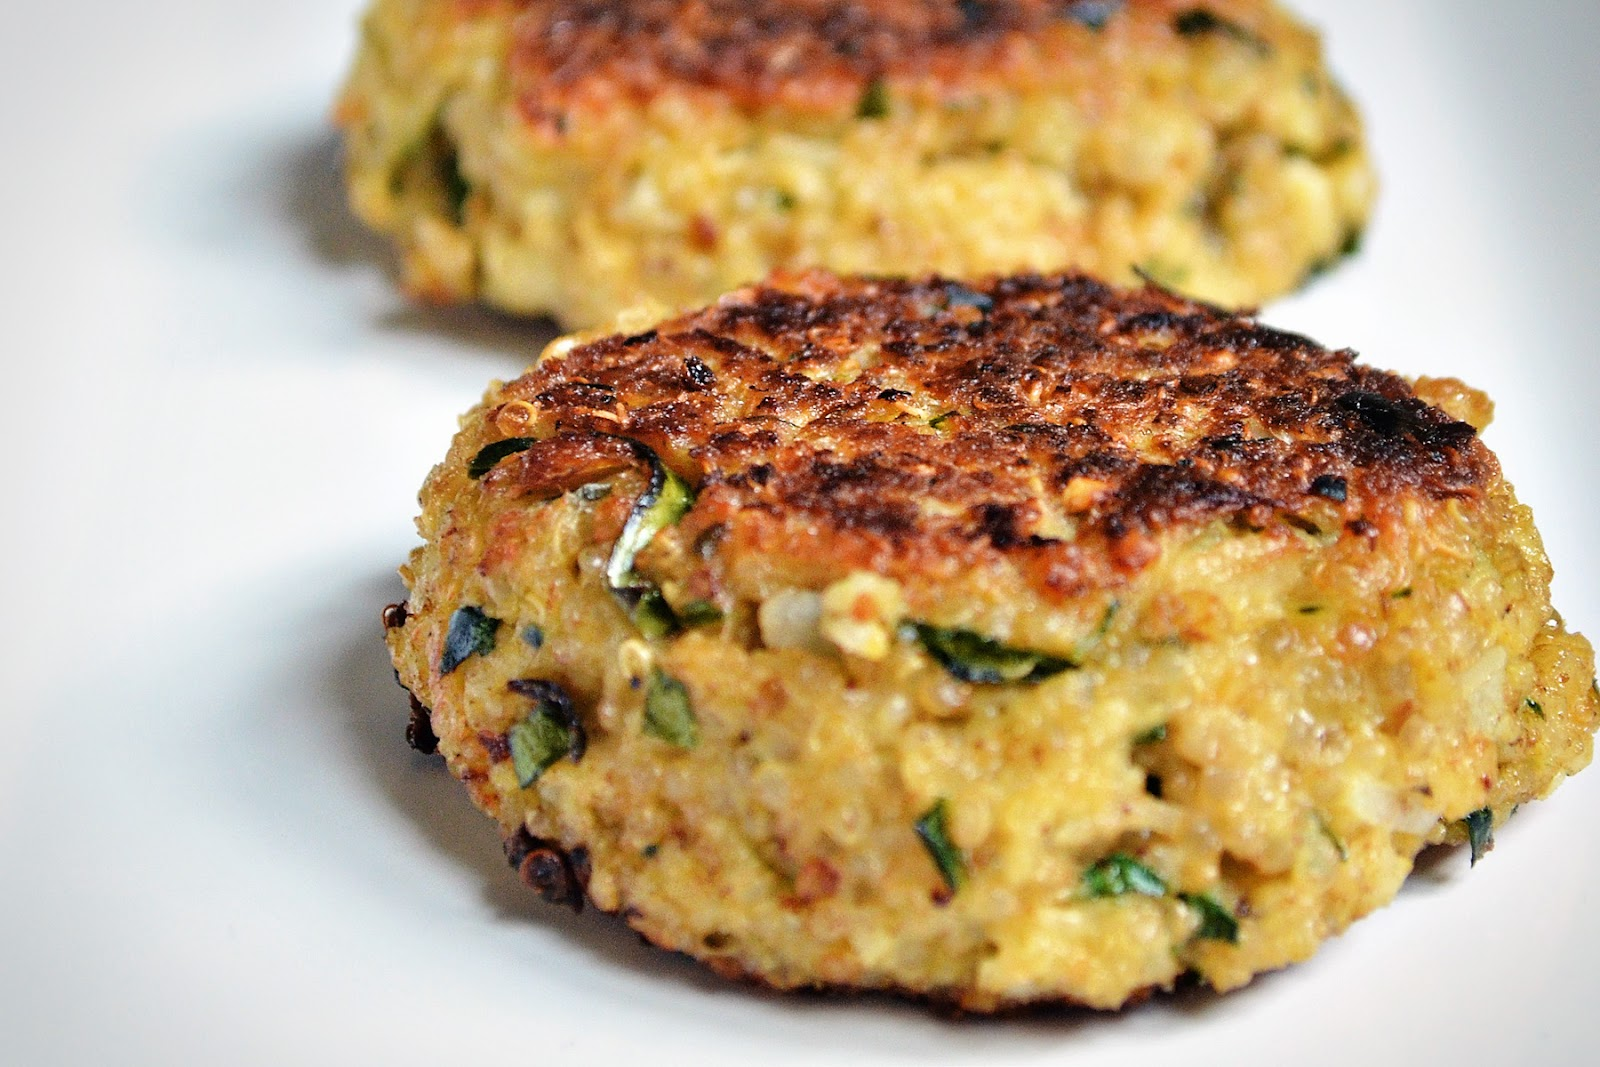 Since we typically make crock-pot meals, I haven't made quinoa patties ...